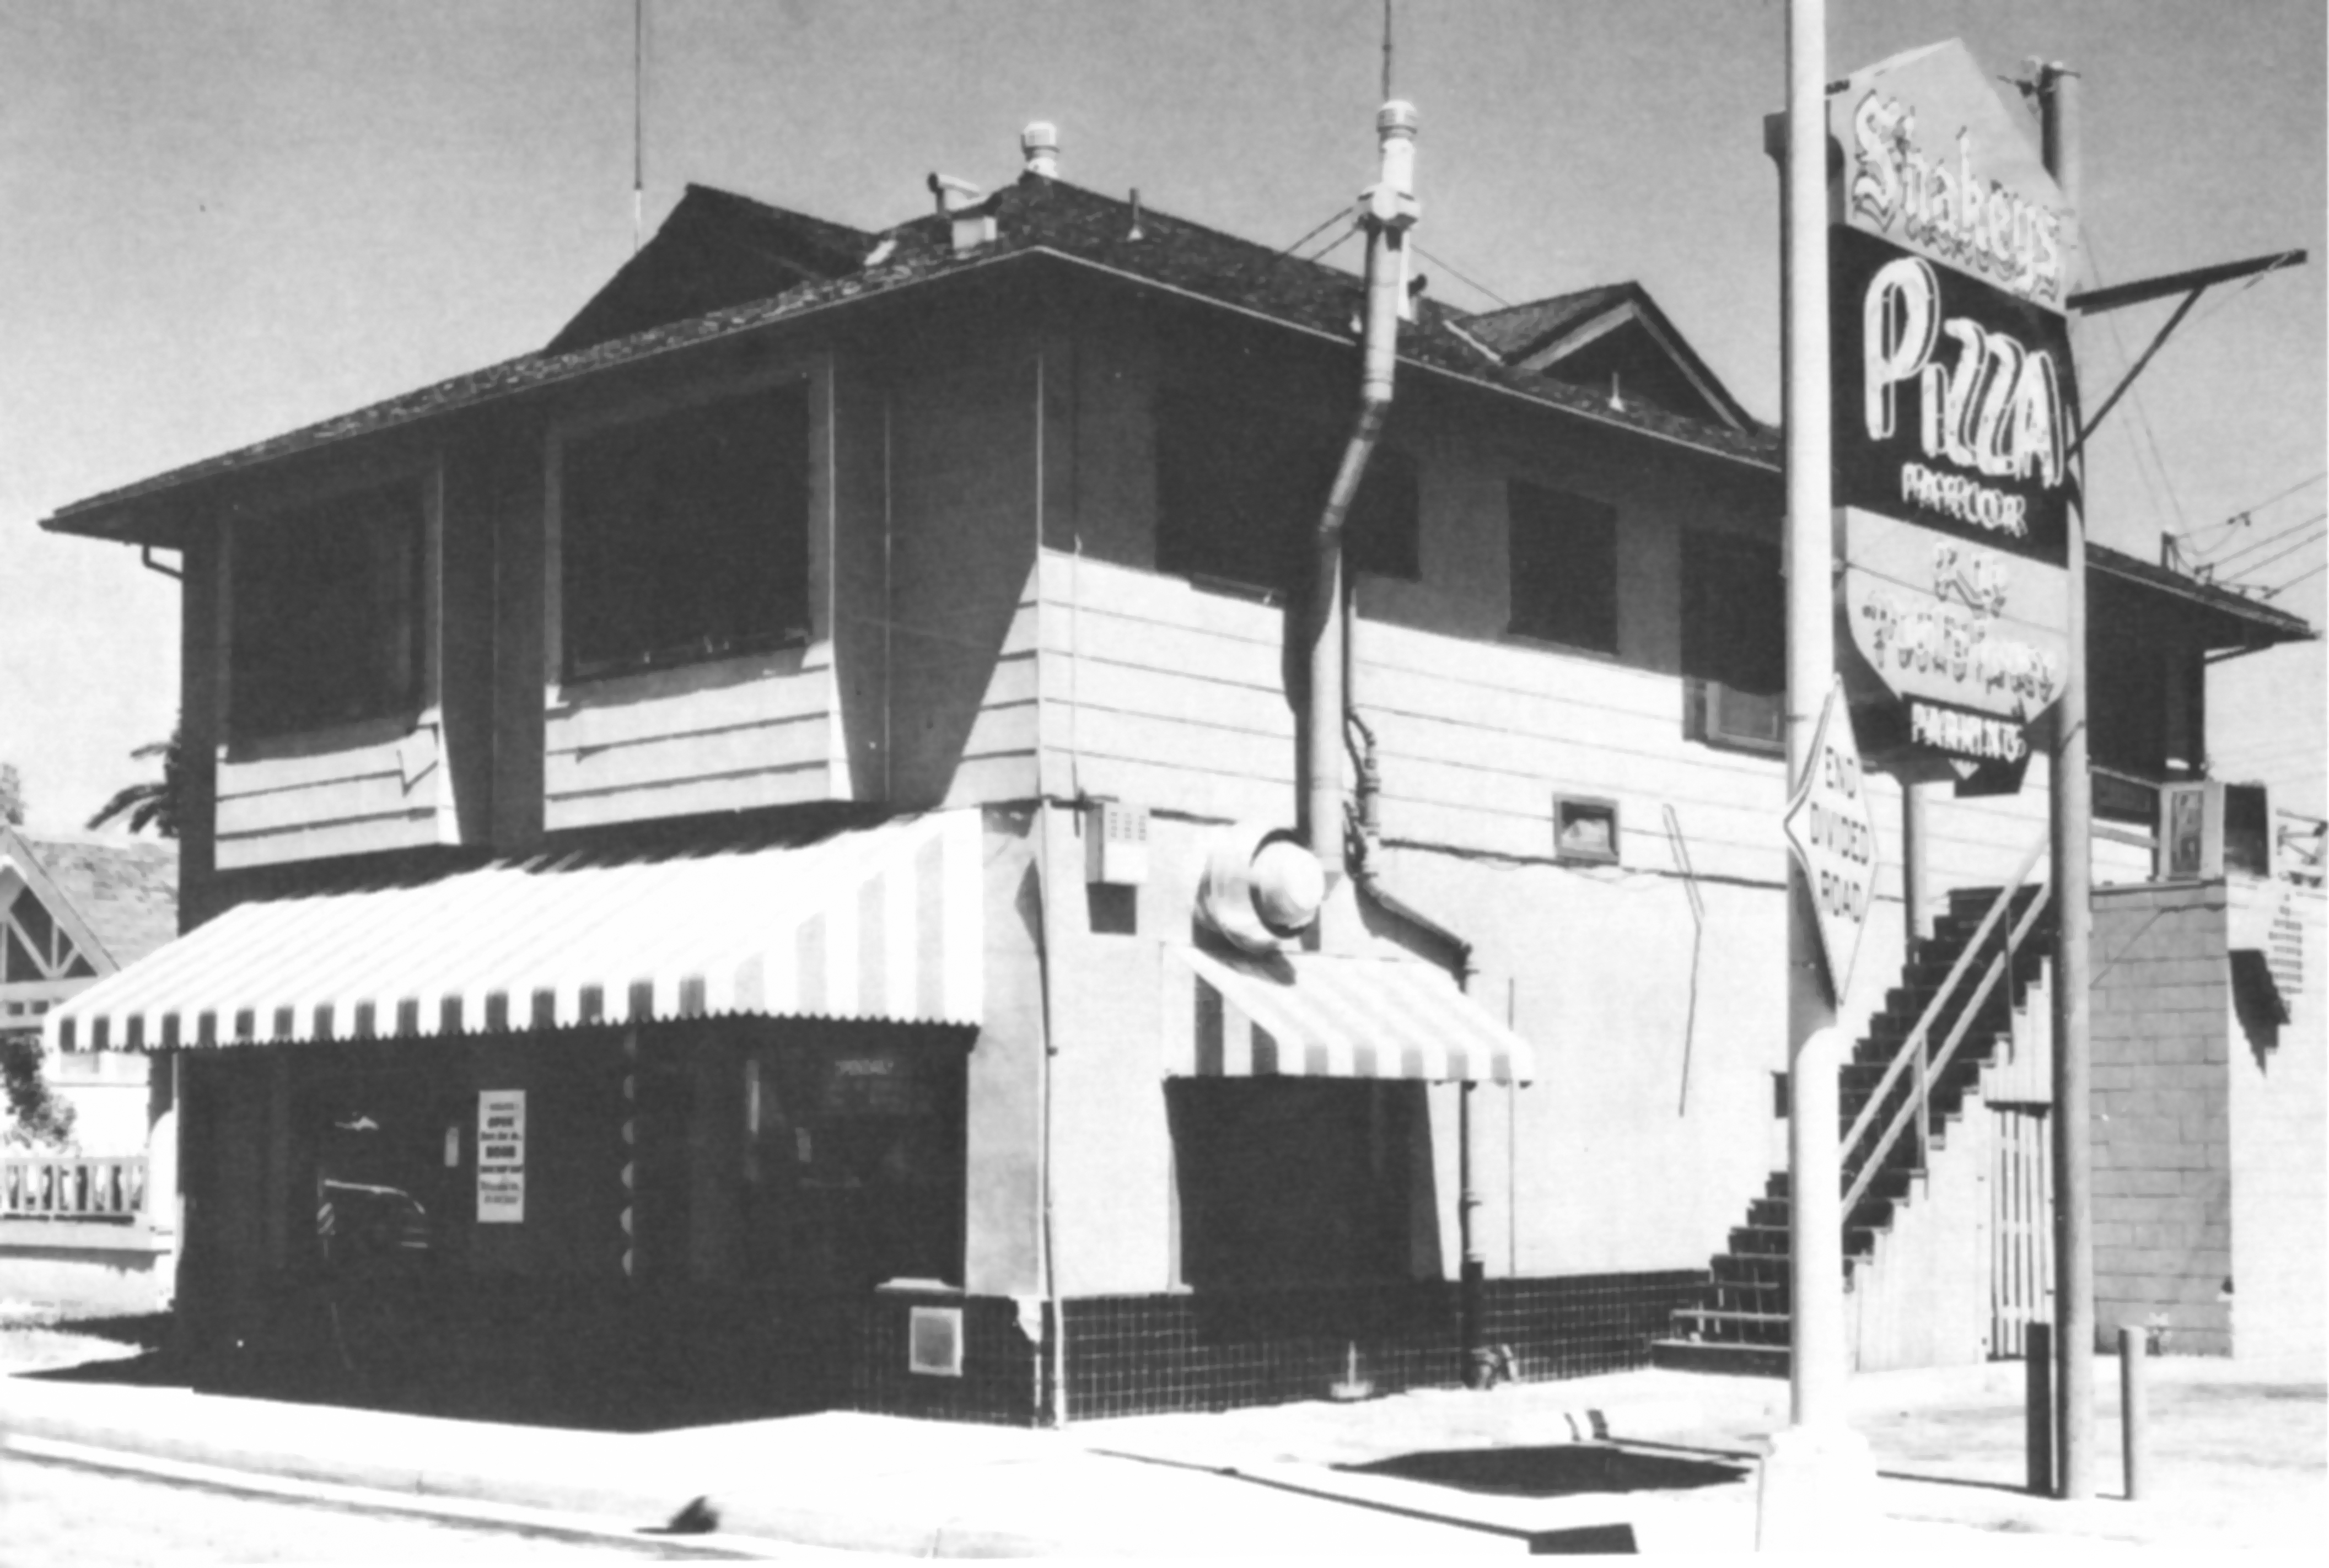 Shakey's Pizza Parlor building is a cherished Sacramento landmark ...